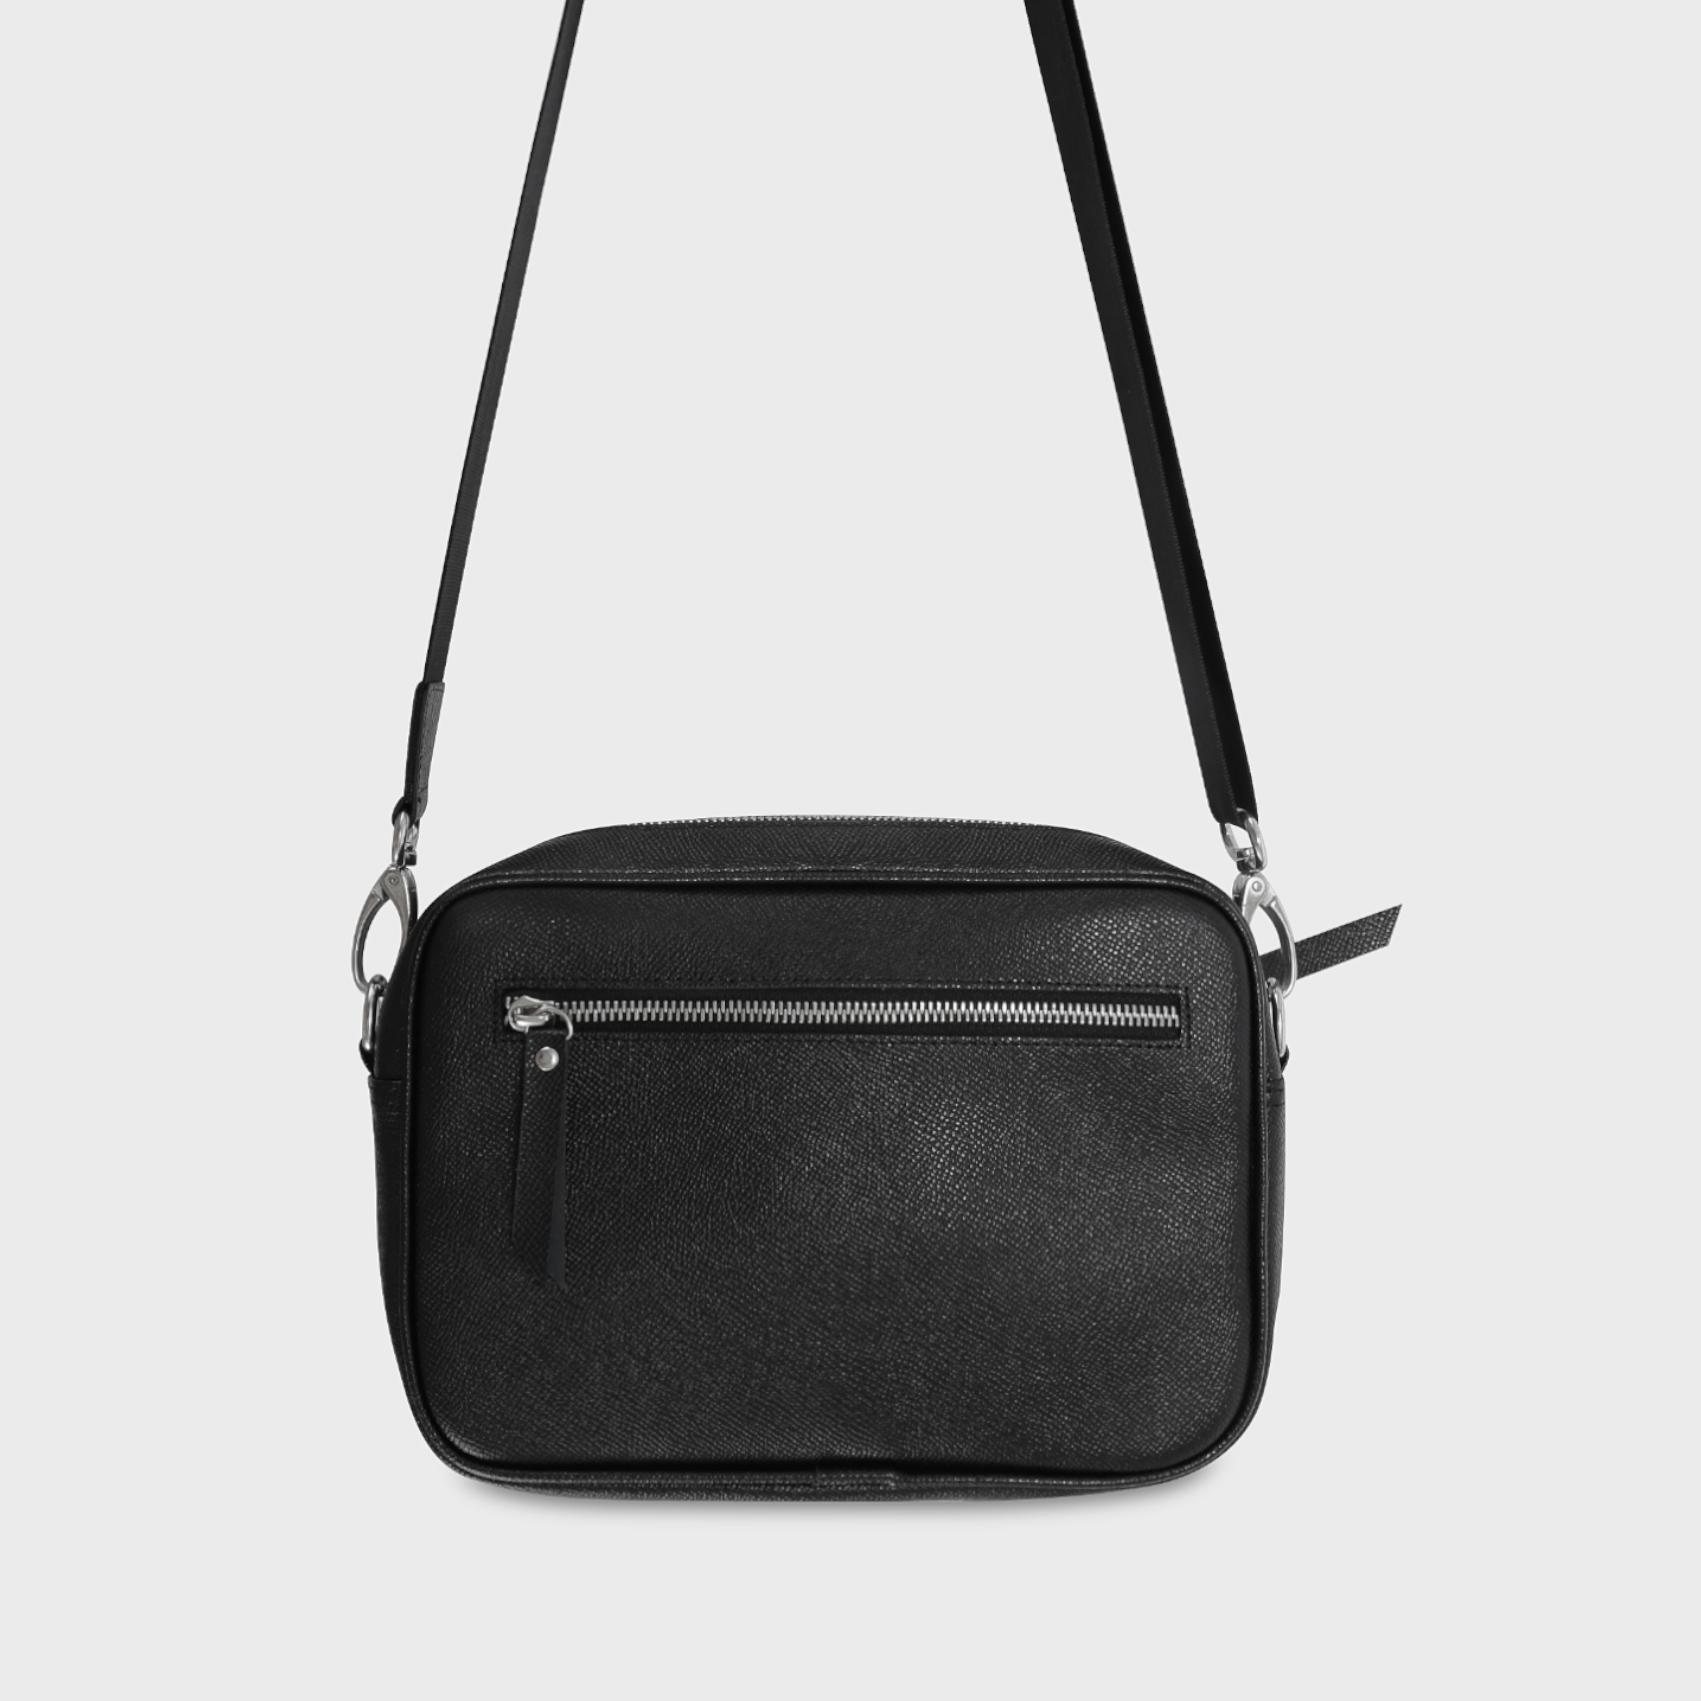 MESSENGER BAG SIZE S - ĐEN